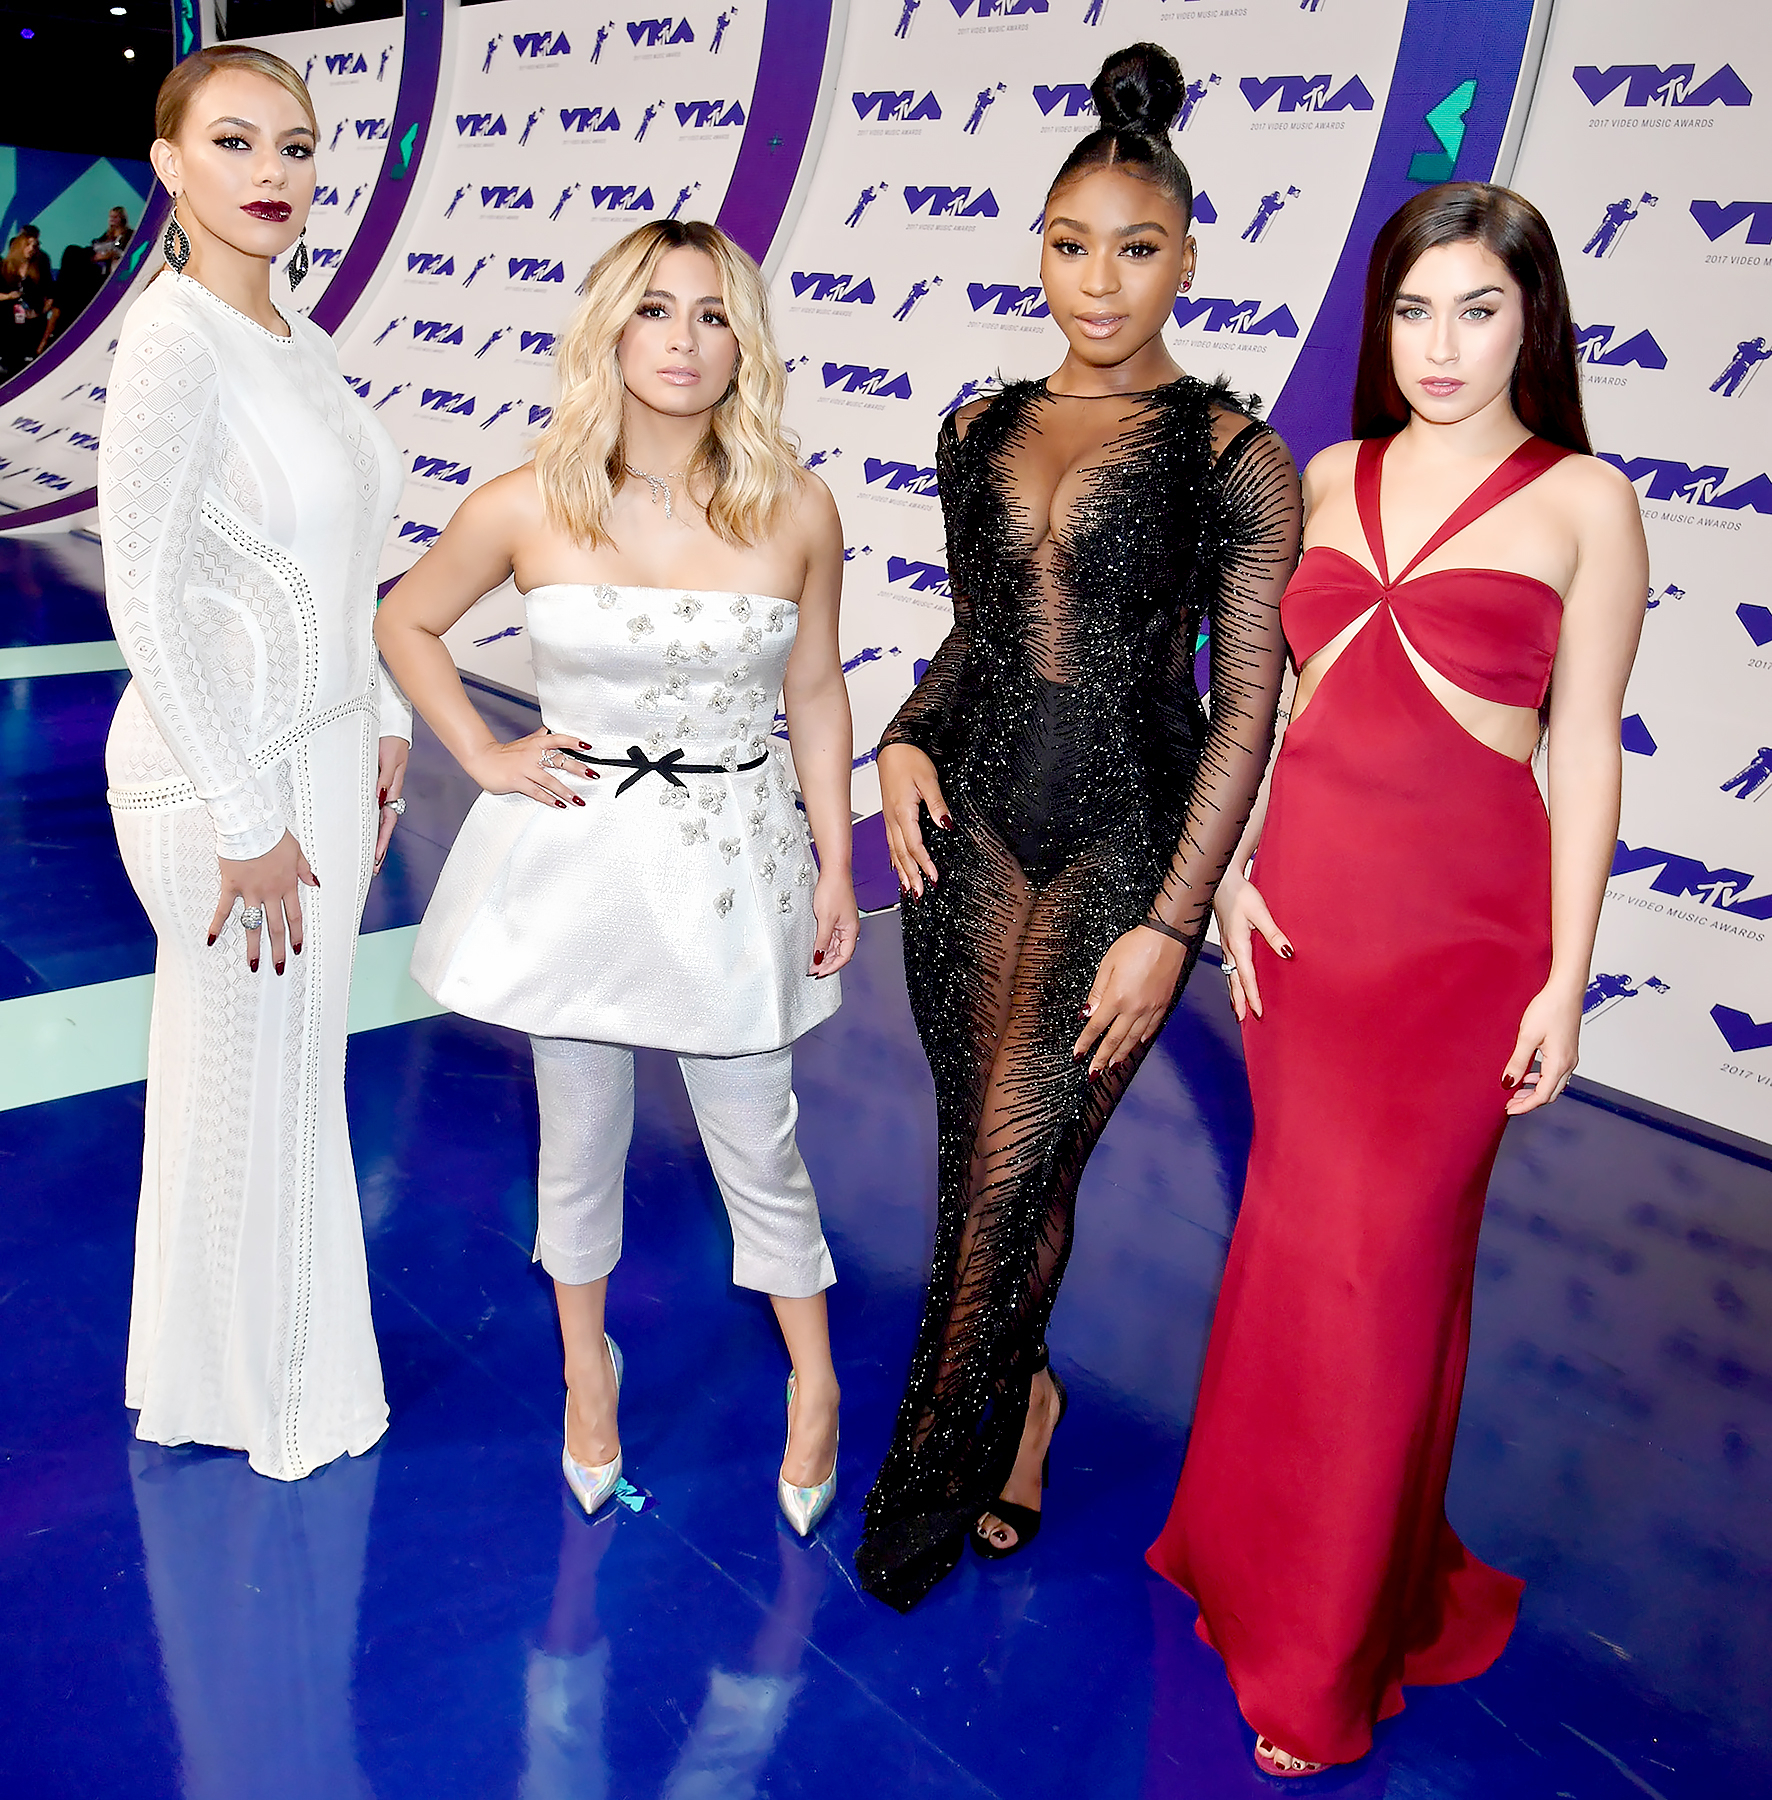 Dinah Jane, Ally Brooke, Normani Kordei and Lauren Jauregui of Fifth Harmony attend the 2017 MTV Video Music Awards at The Forum in Inglewood, California, on August 27, 2017.